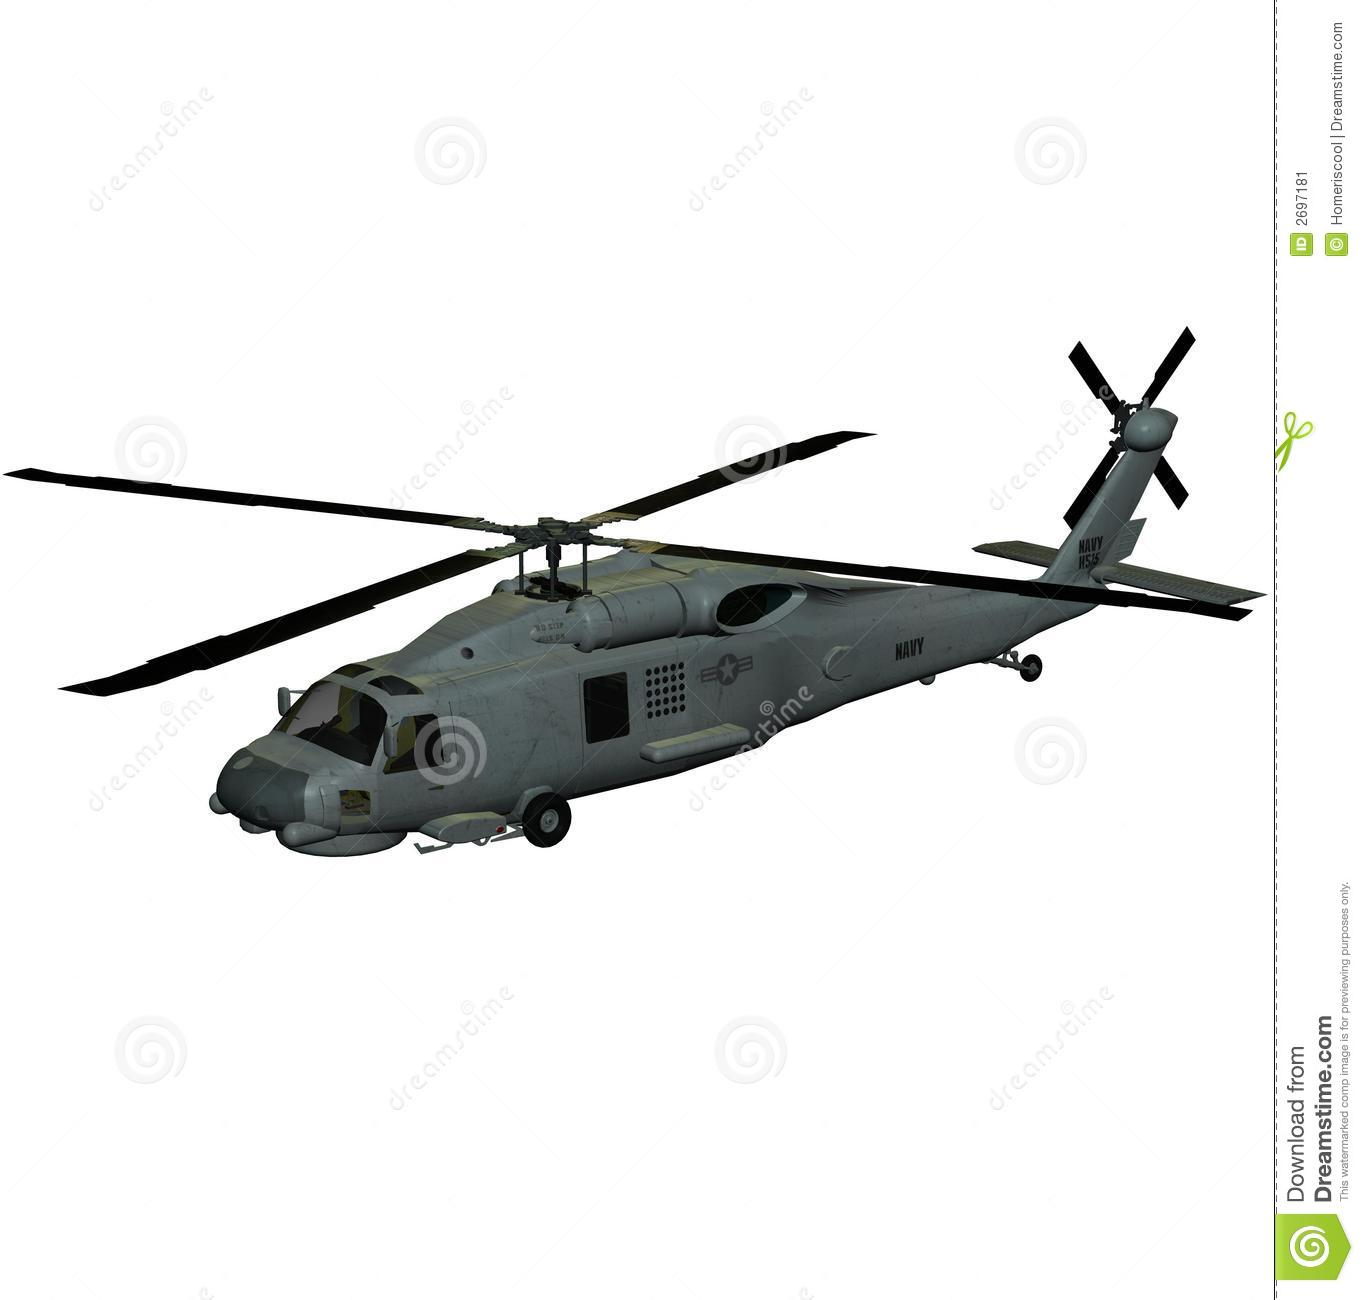 Helicopter's Rotor Stock Image.